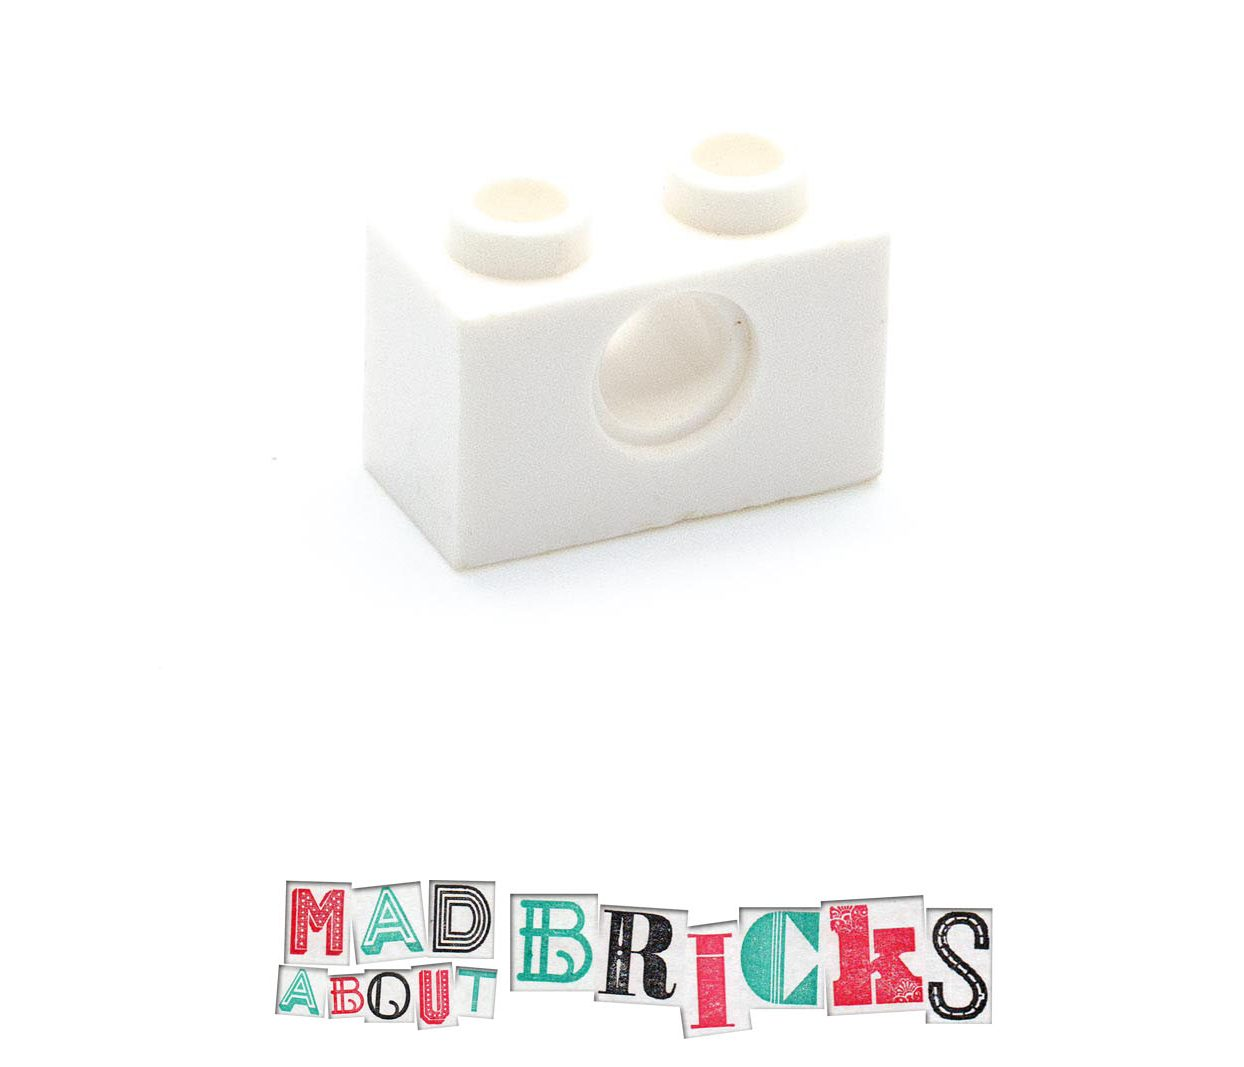 Lego 370001 3700 White 1x2 Technic Brick with hole front